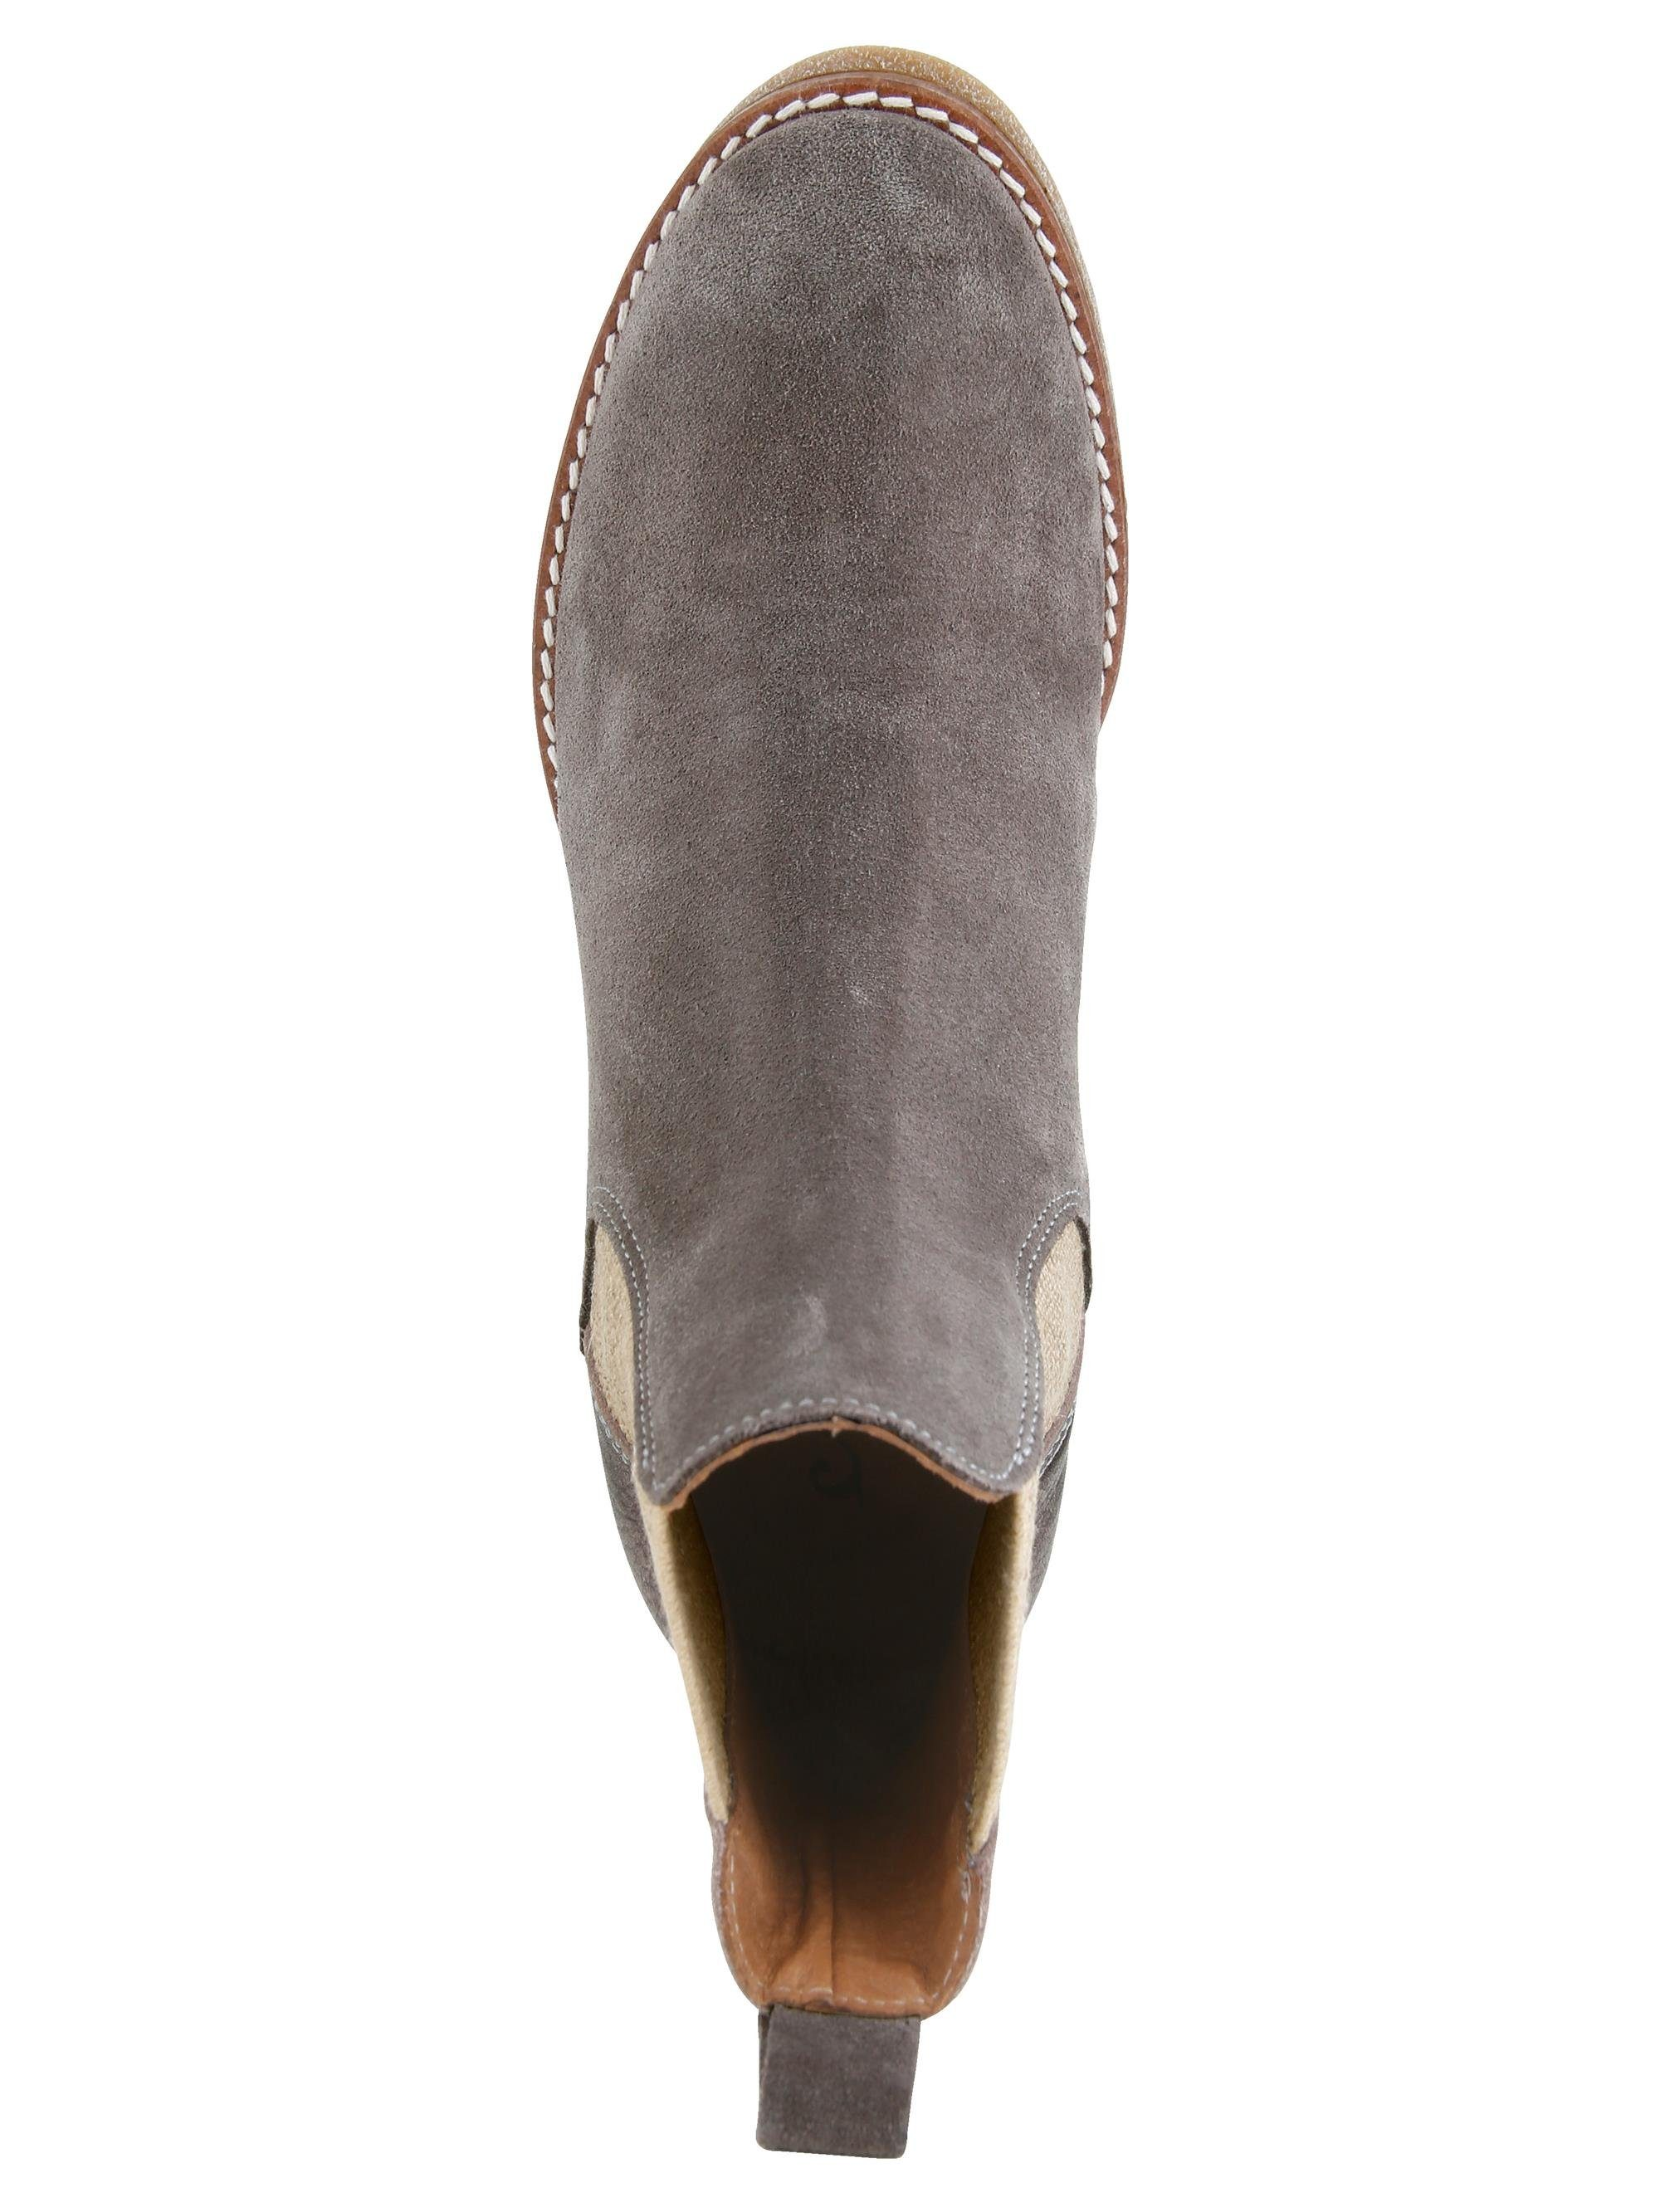 Alba Moda Chelsea-Boot in modischem Leder-Mix  taupe#ft5_slash#altsilber